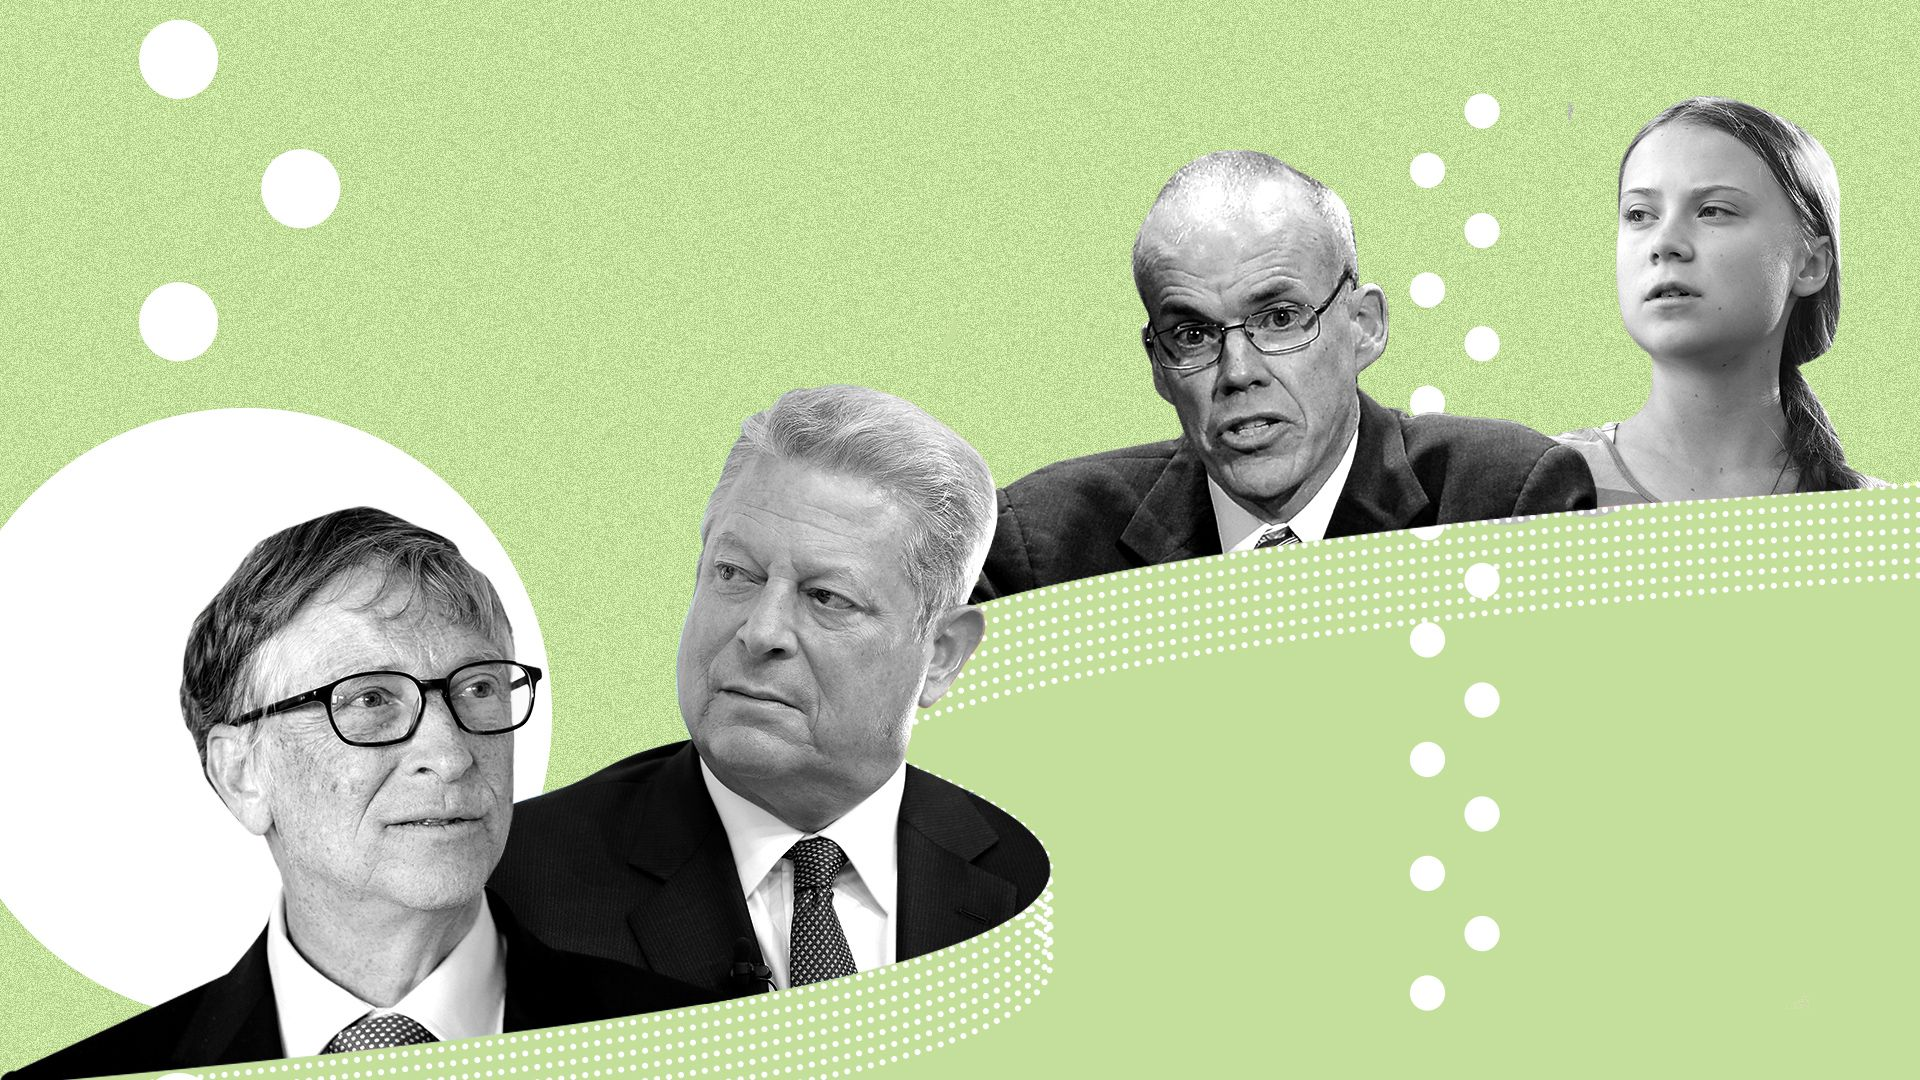 The carbon footprints of Al Gore, Bill Gates, Greta Thunberg and Bill McKibben